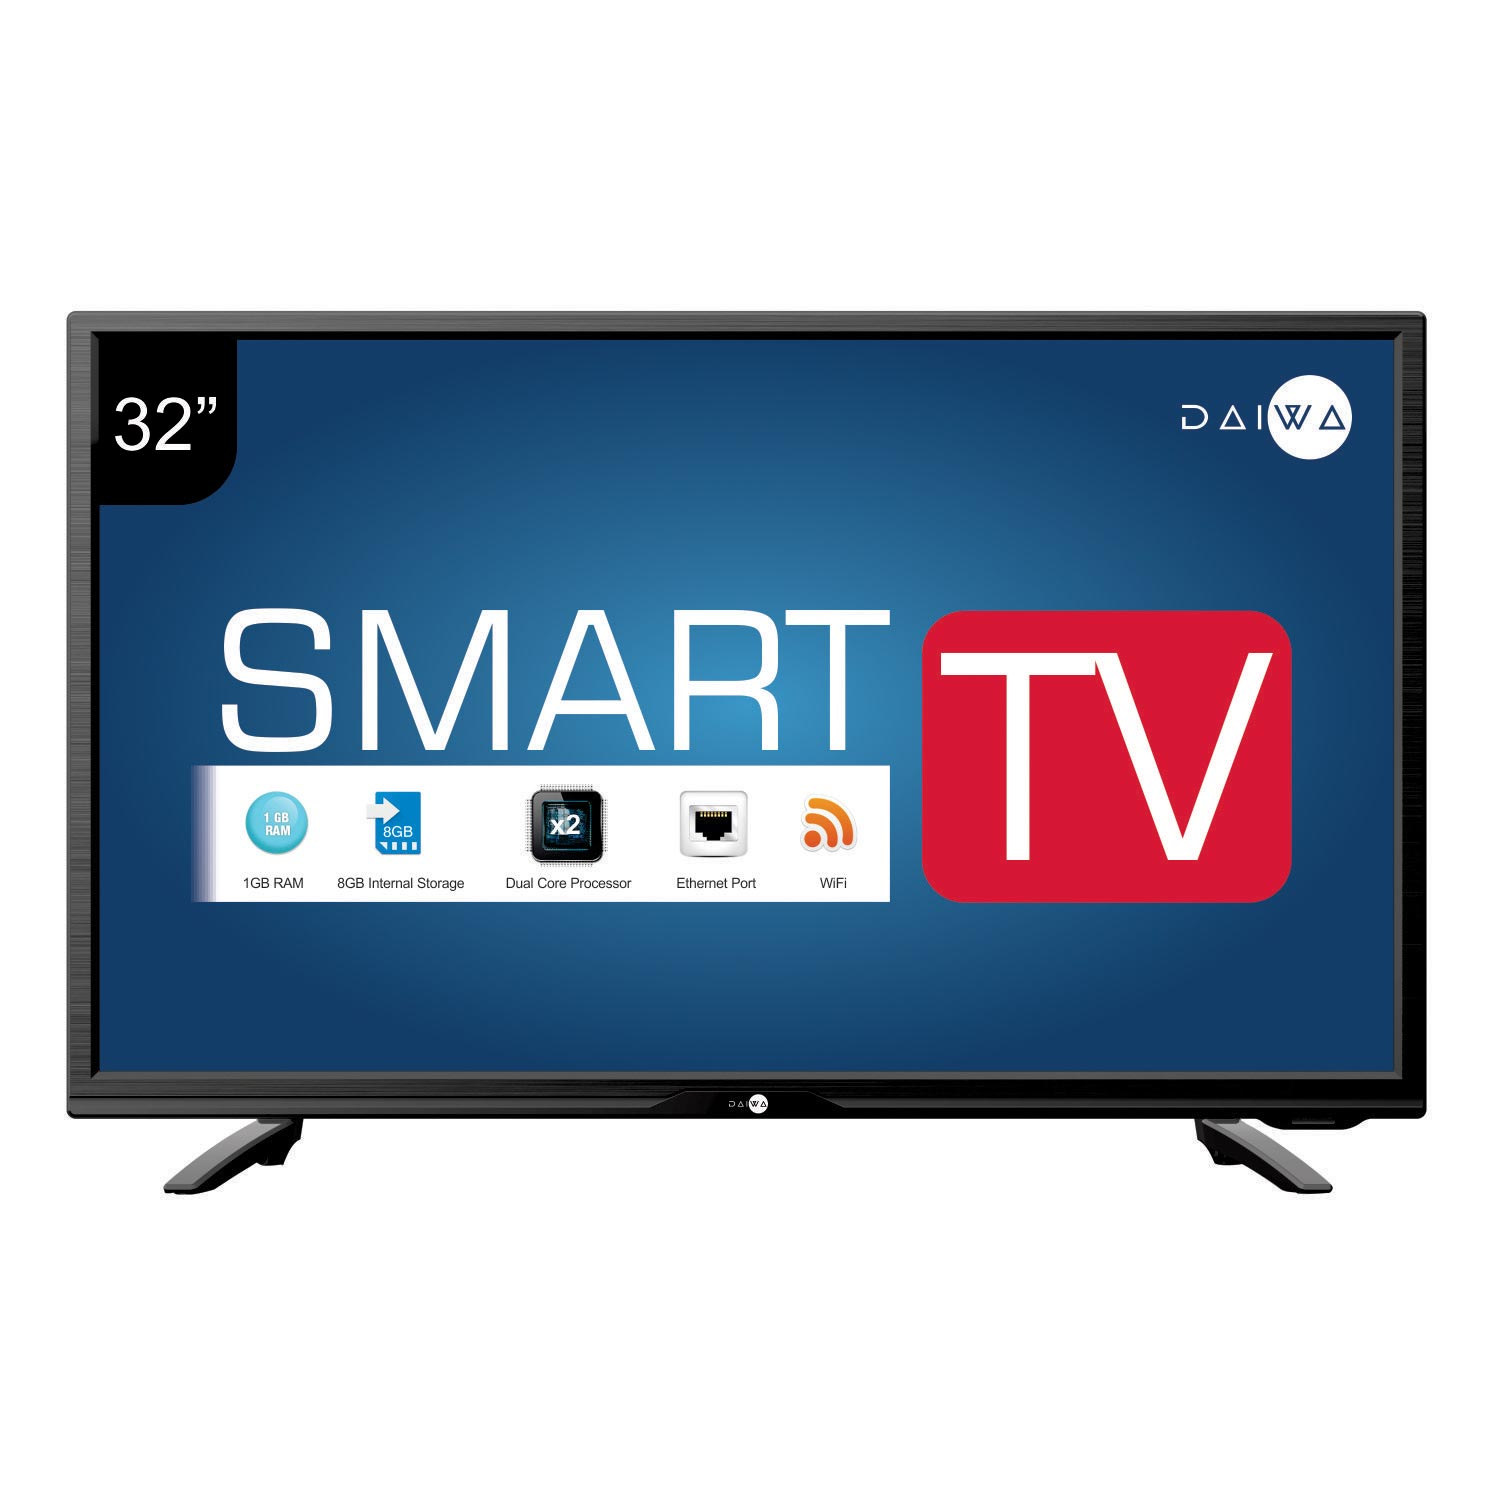 daiwa d32c4s 80 cm smart led tv 32 inch hd resolutiondaiwa. Black Bedroom Furniture Sets. Home Design Ideas